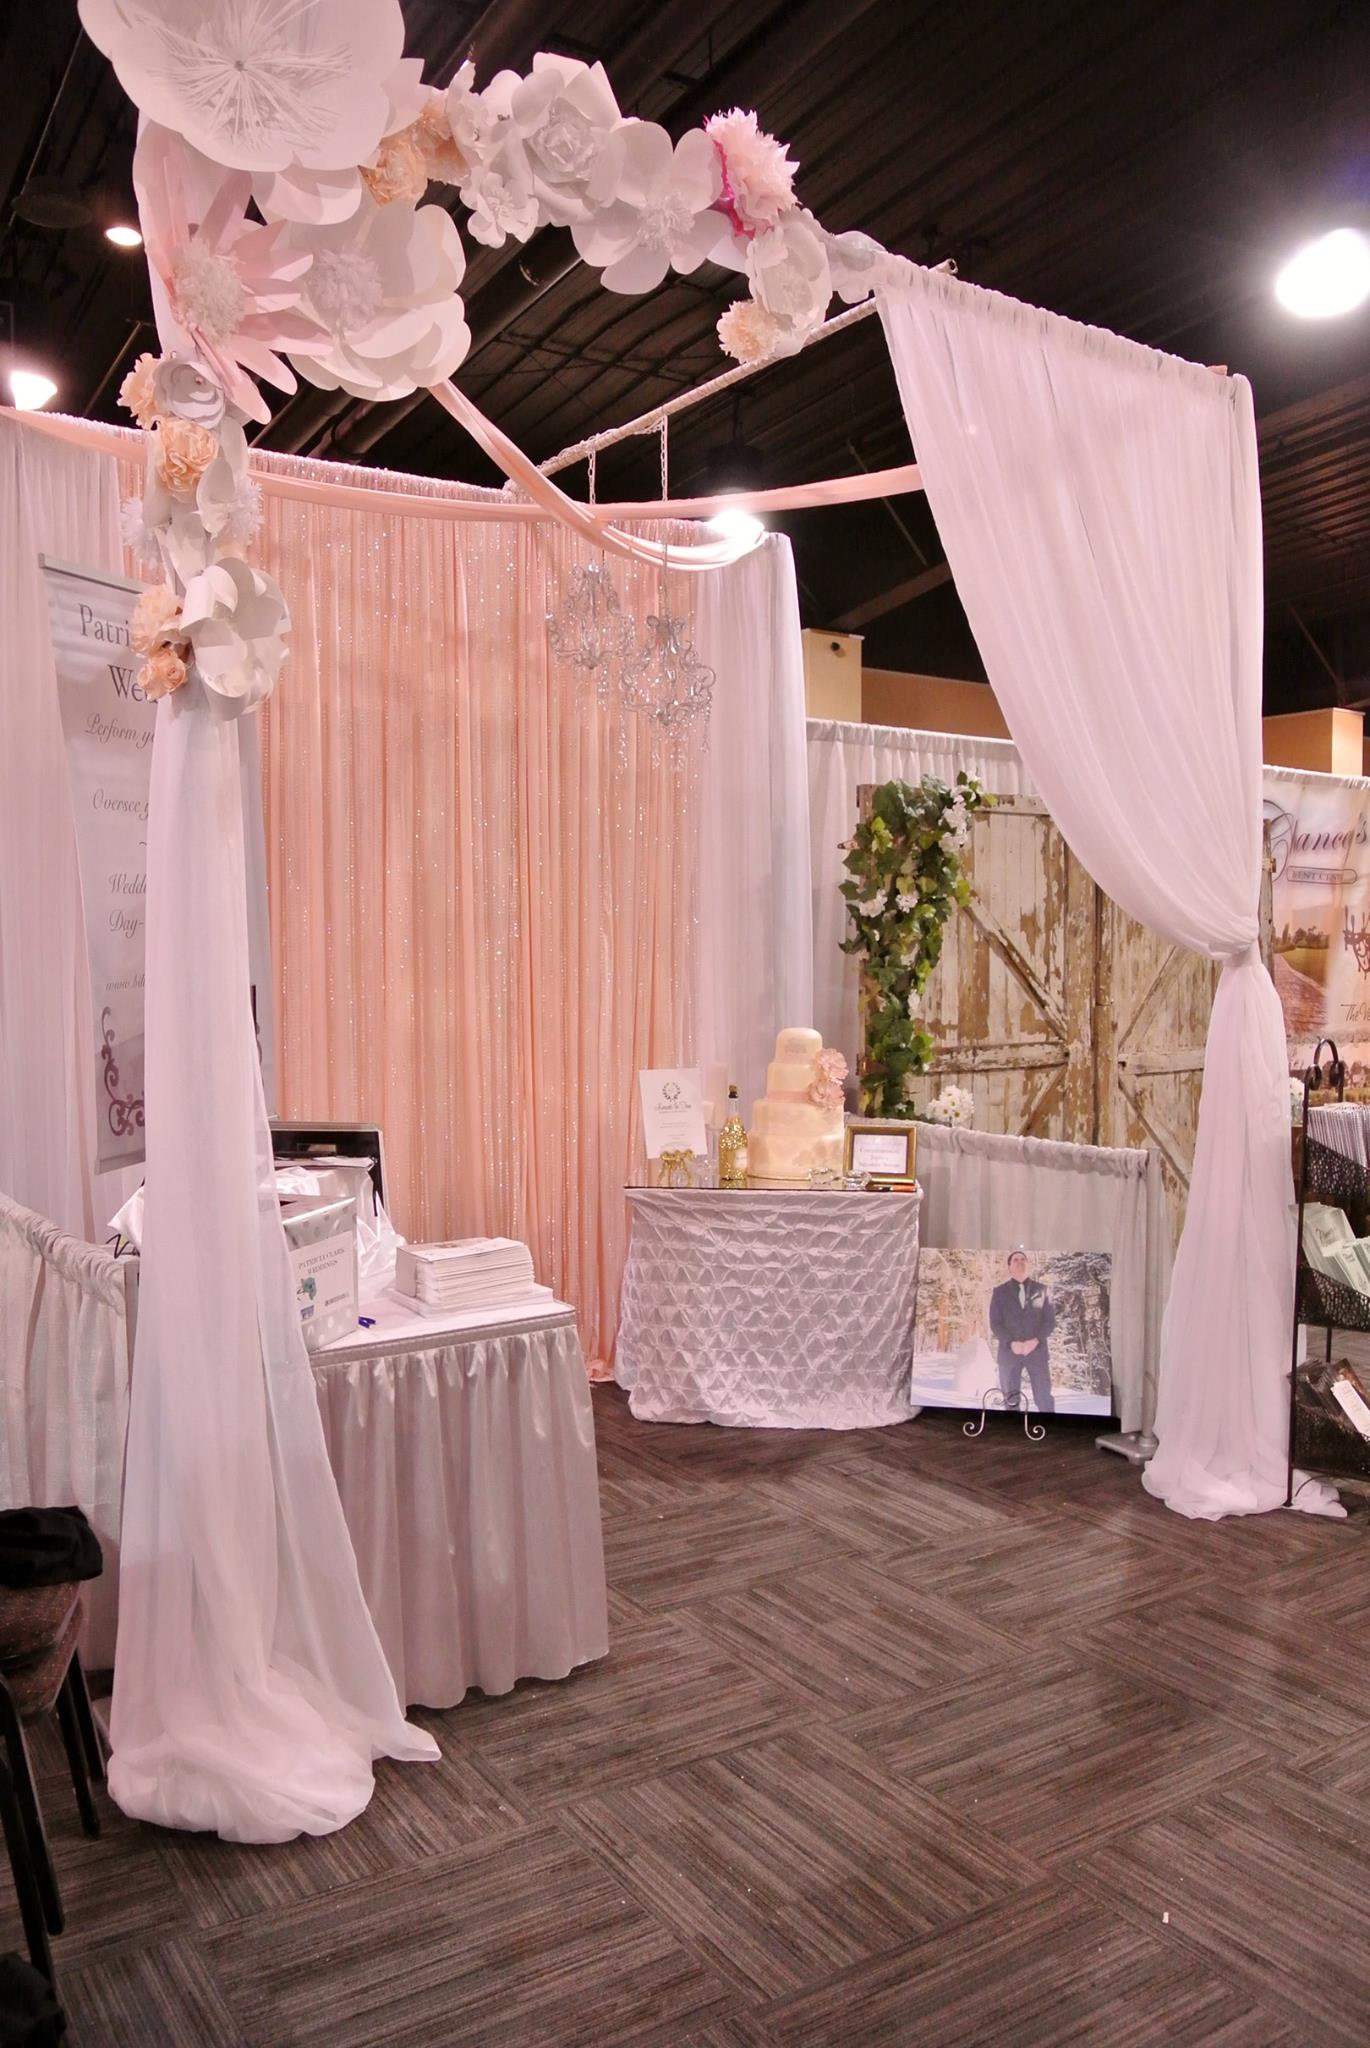 Bridal fair Southeast Texas, Bridal Fair Beaumont TX, Bridal Fair SETX, Bridal Fair Golden Triangle TX, Bridal Fair Mid County, Bridal Fair Port Arthur, Bridal Fair Groves TX, Bridal Fair Port Neches, Bridal Fair Nederland TX, Bridal Fair Bridge City TX,